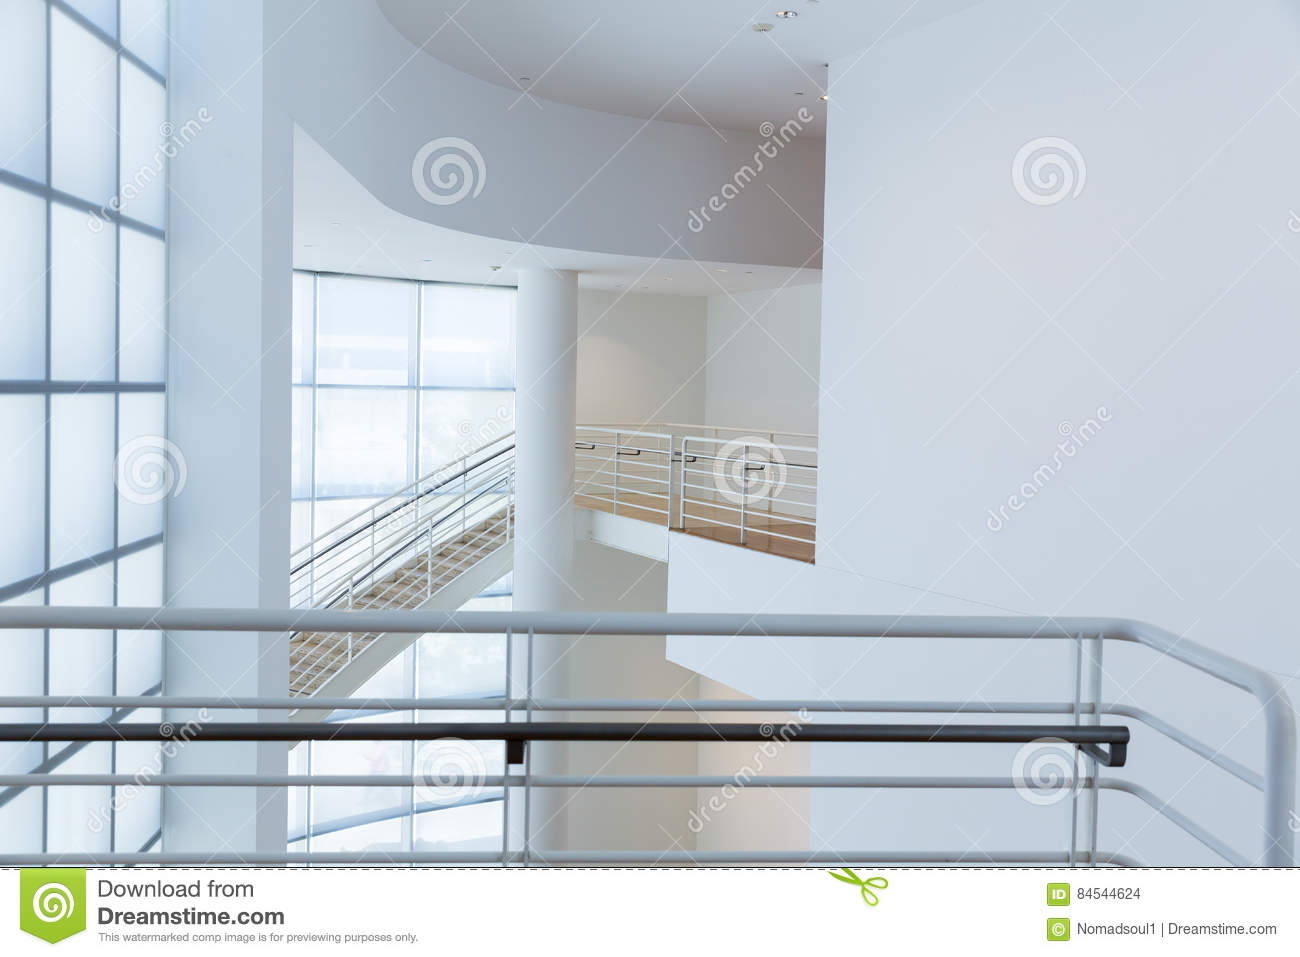 Access stair with metal handrails